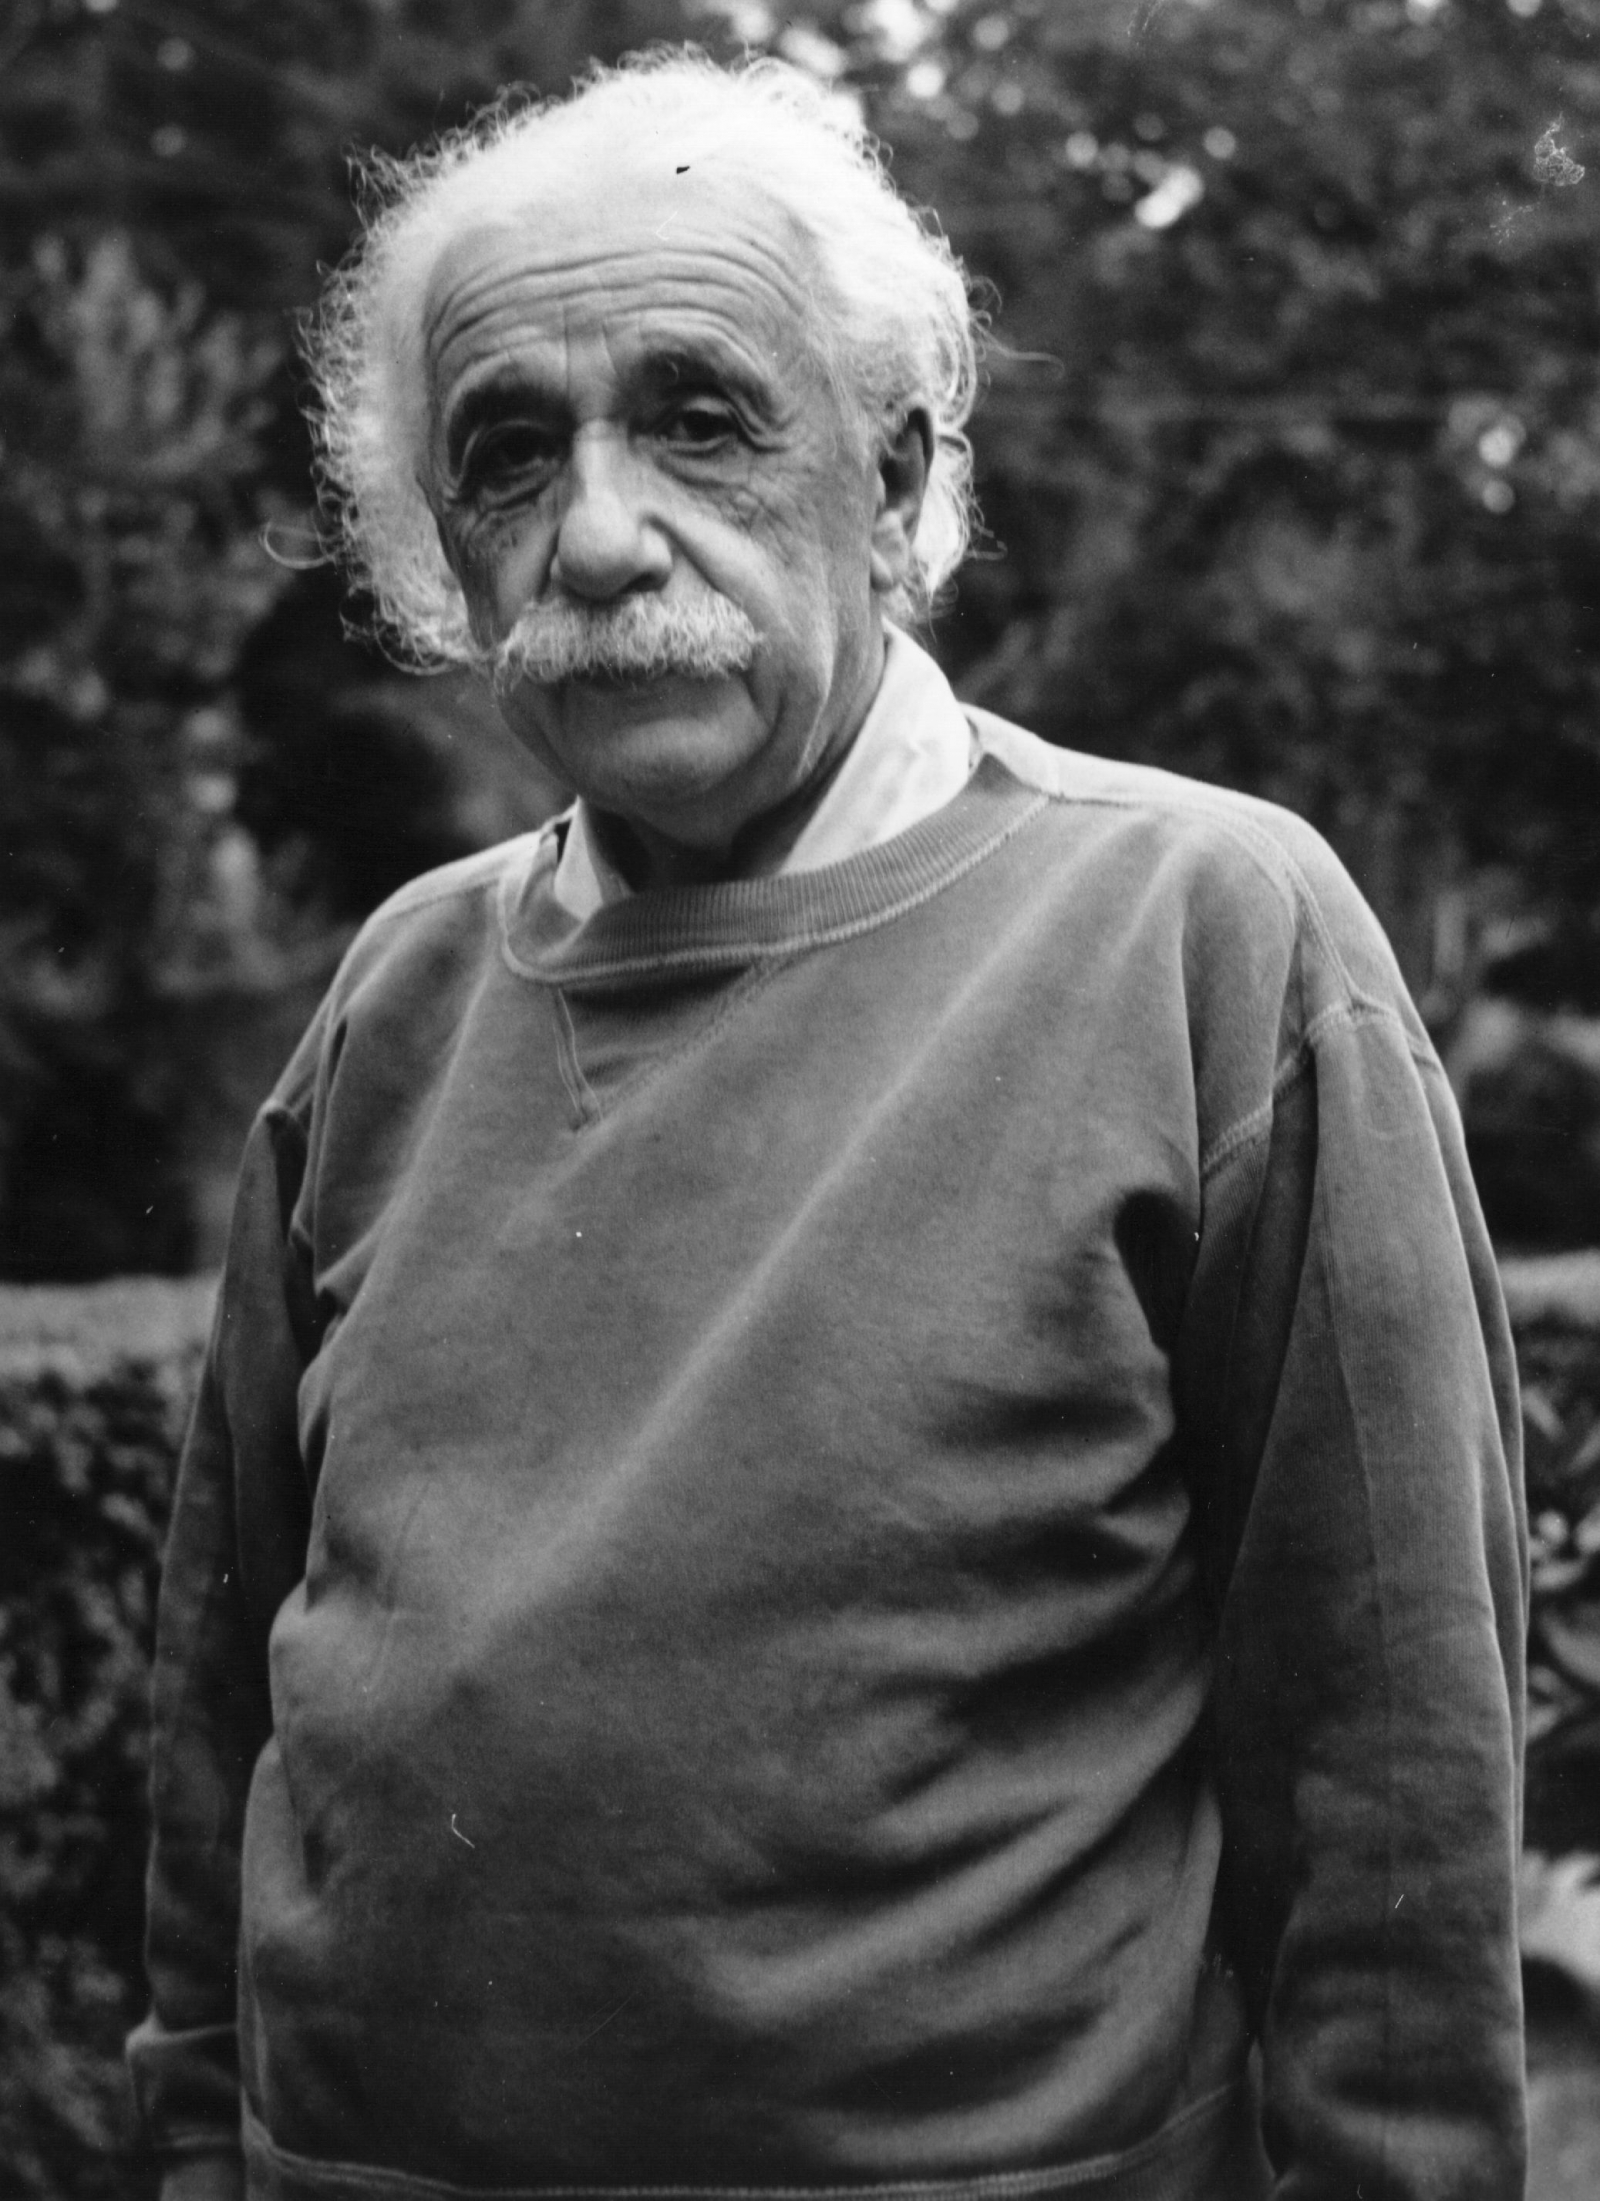 Black Hole Theory >> Albert Einstein: Quotes and photos of father of modern physics on 60th anniversary of death